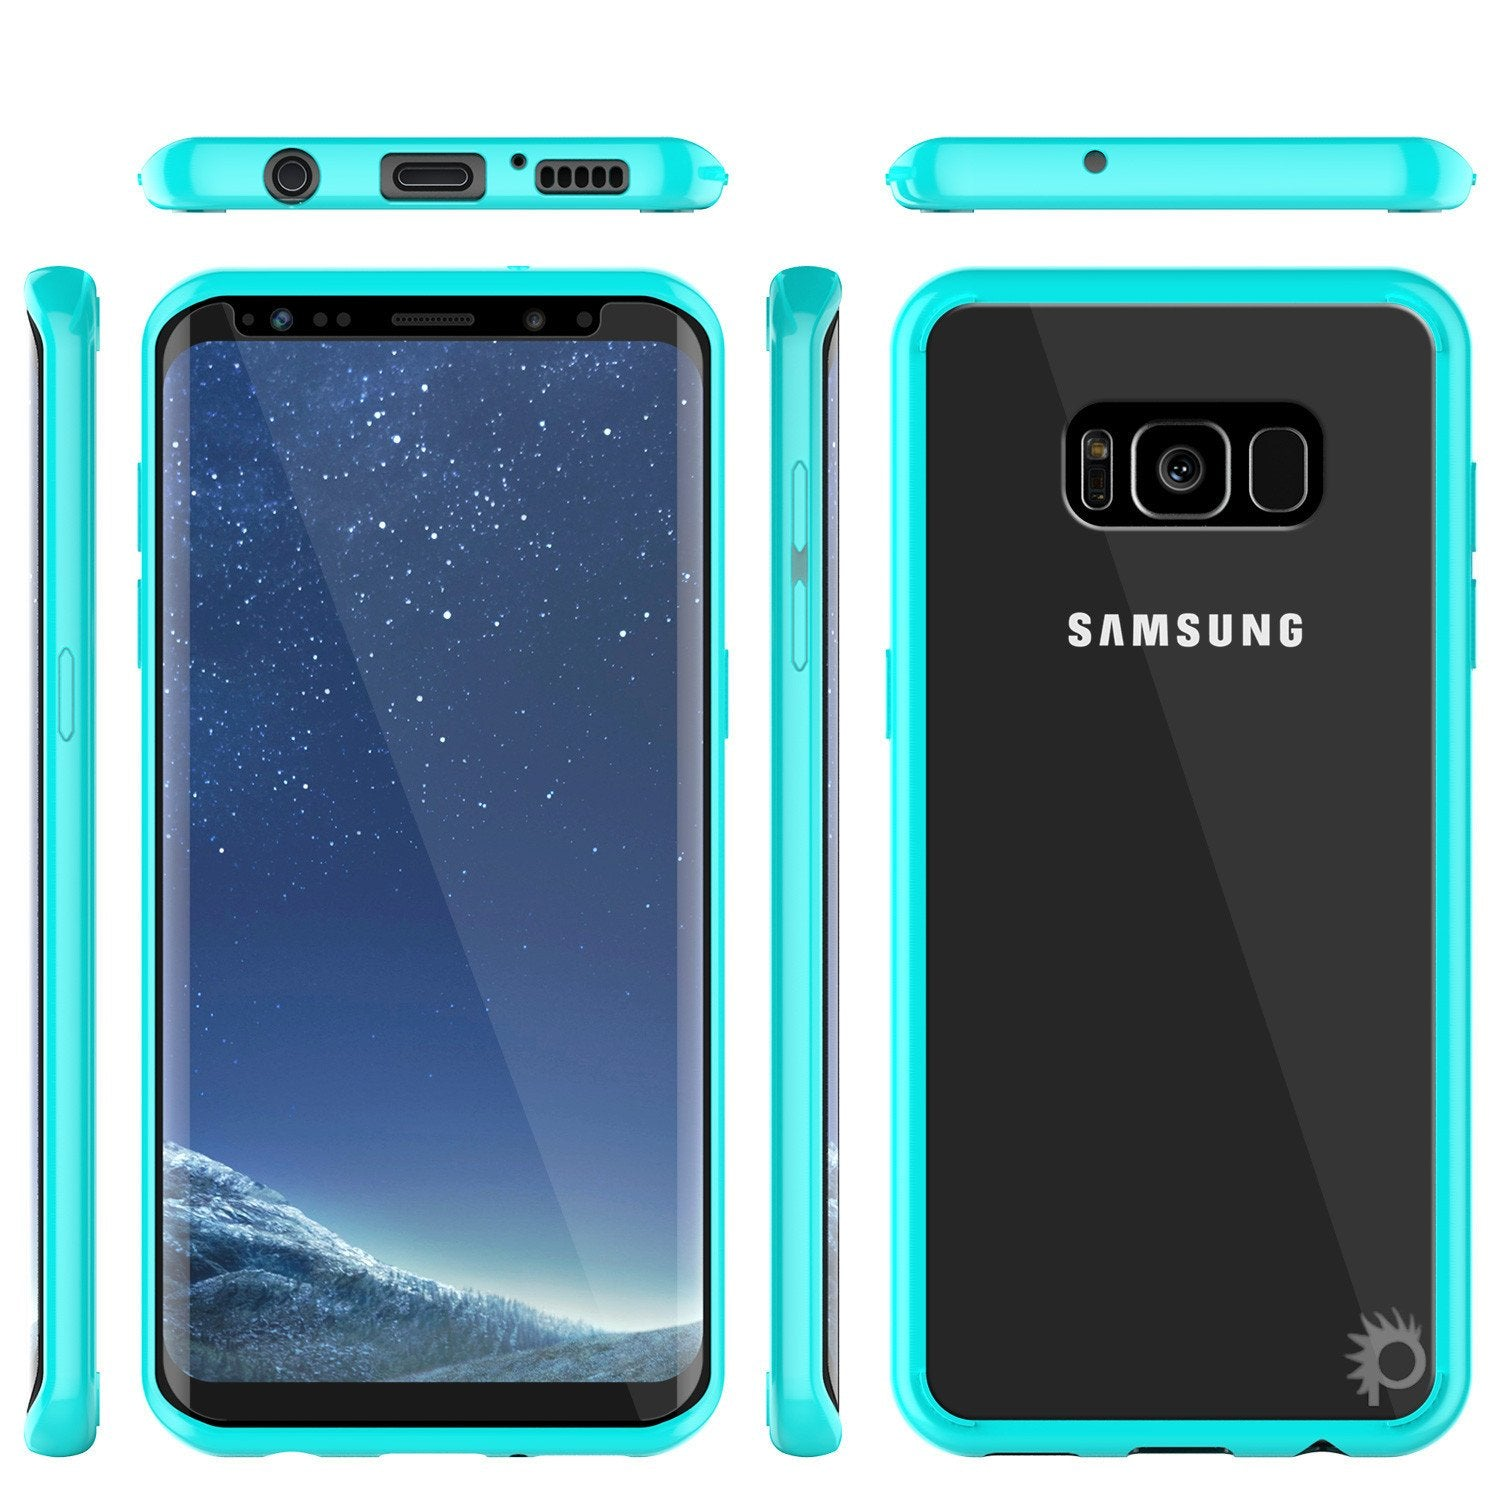 S8 Case Punkcase® LUCID 2.0 Teal Series w/ PUNK SHIELD Screen Protector | Ultra Fit - PunkCase NZ